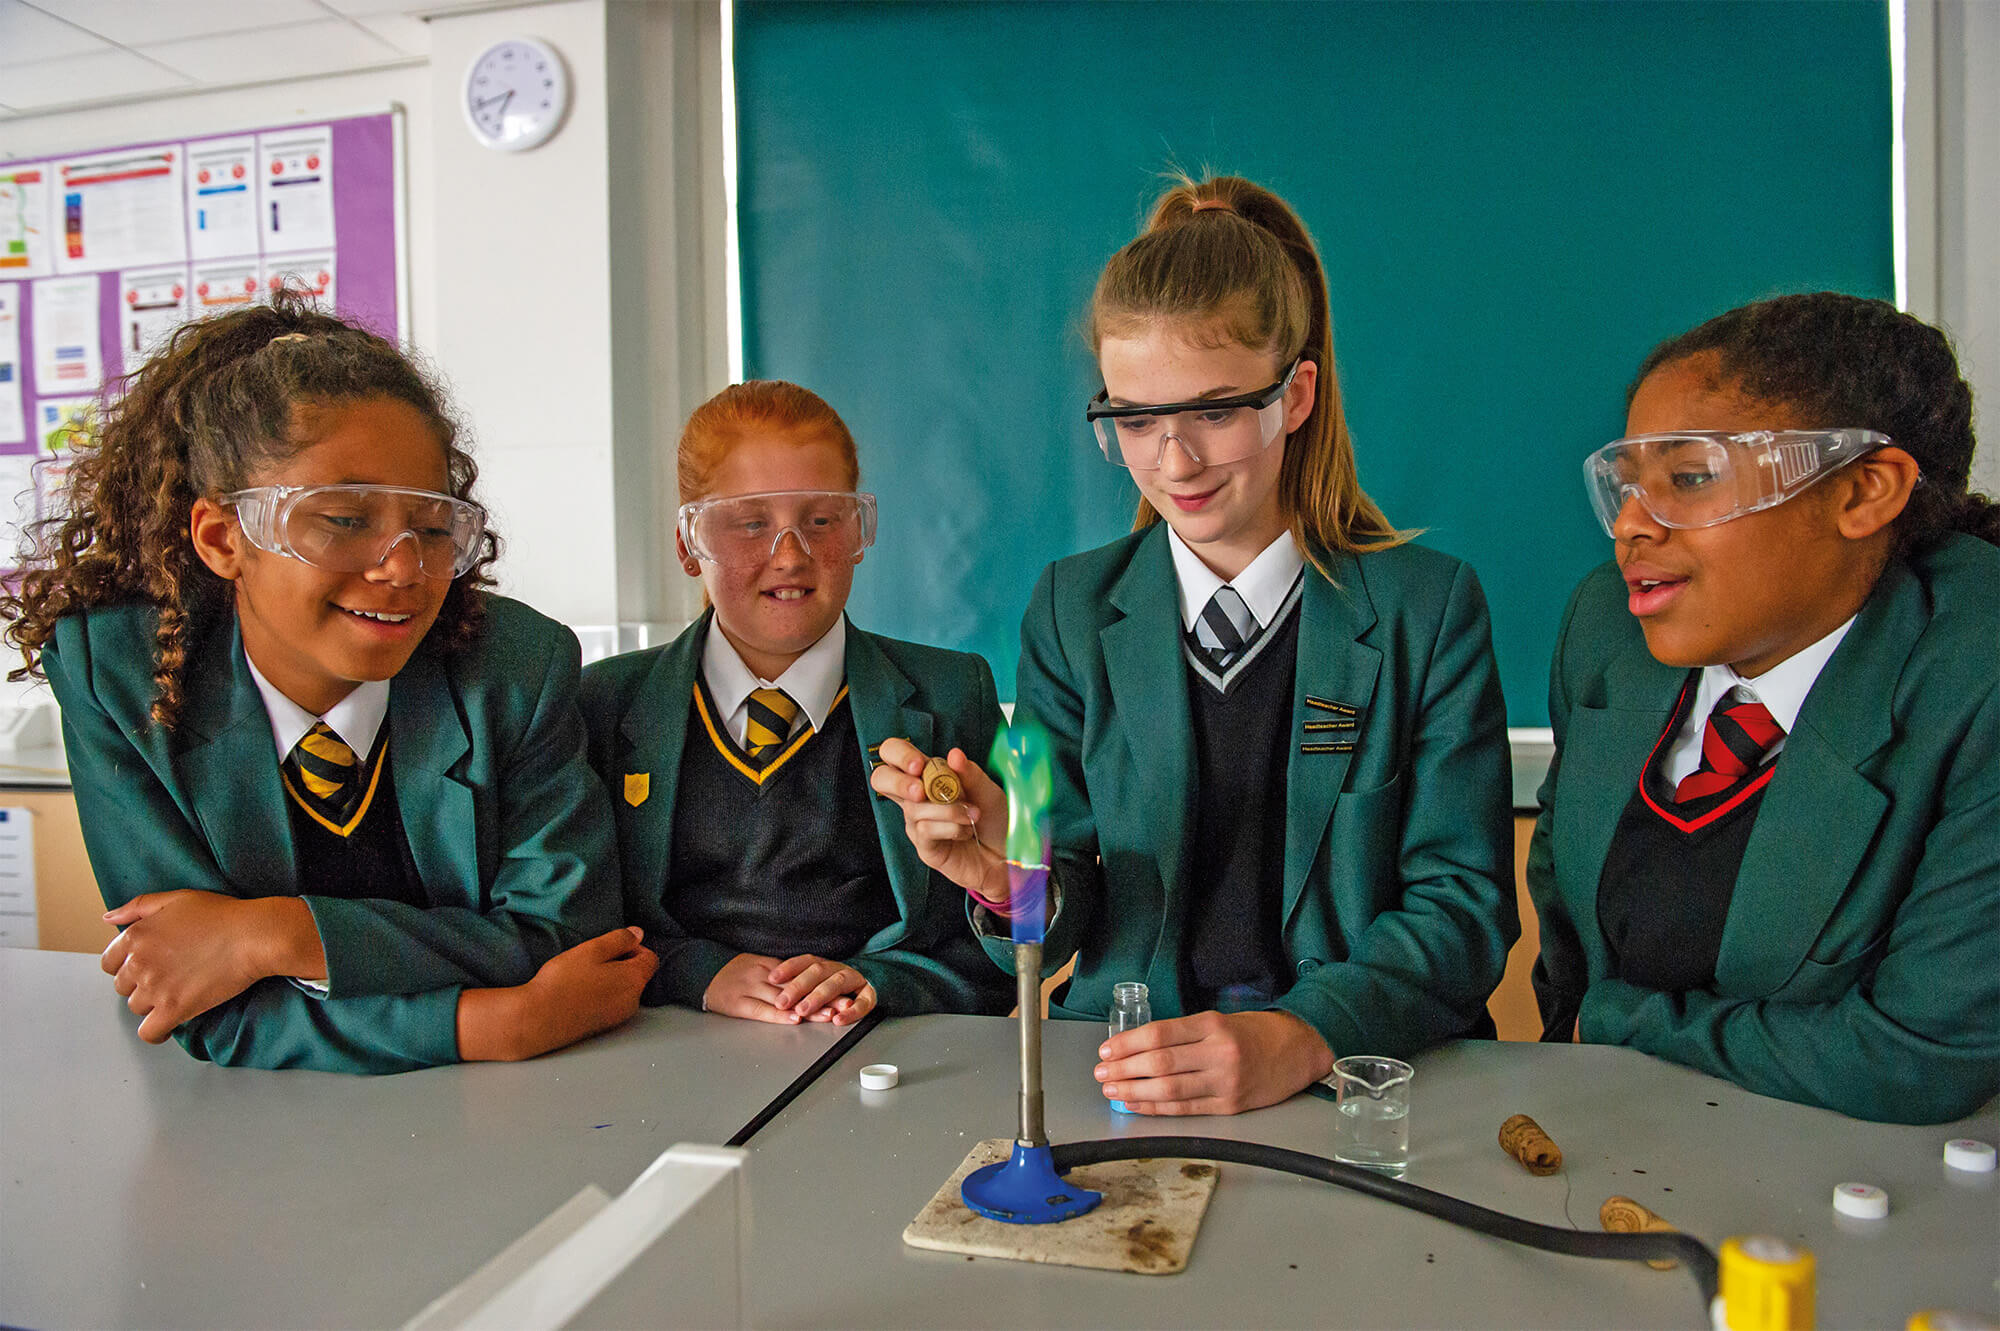 Students working on an Experiment in a Lord Grey Academy Science Lesson